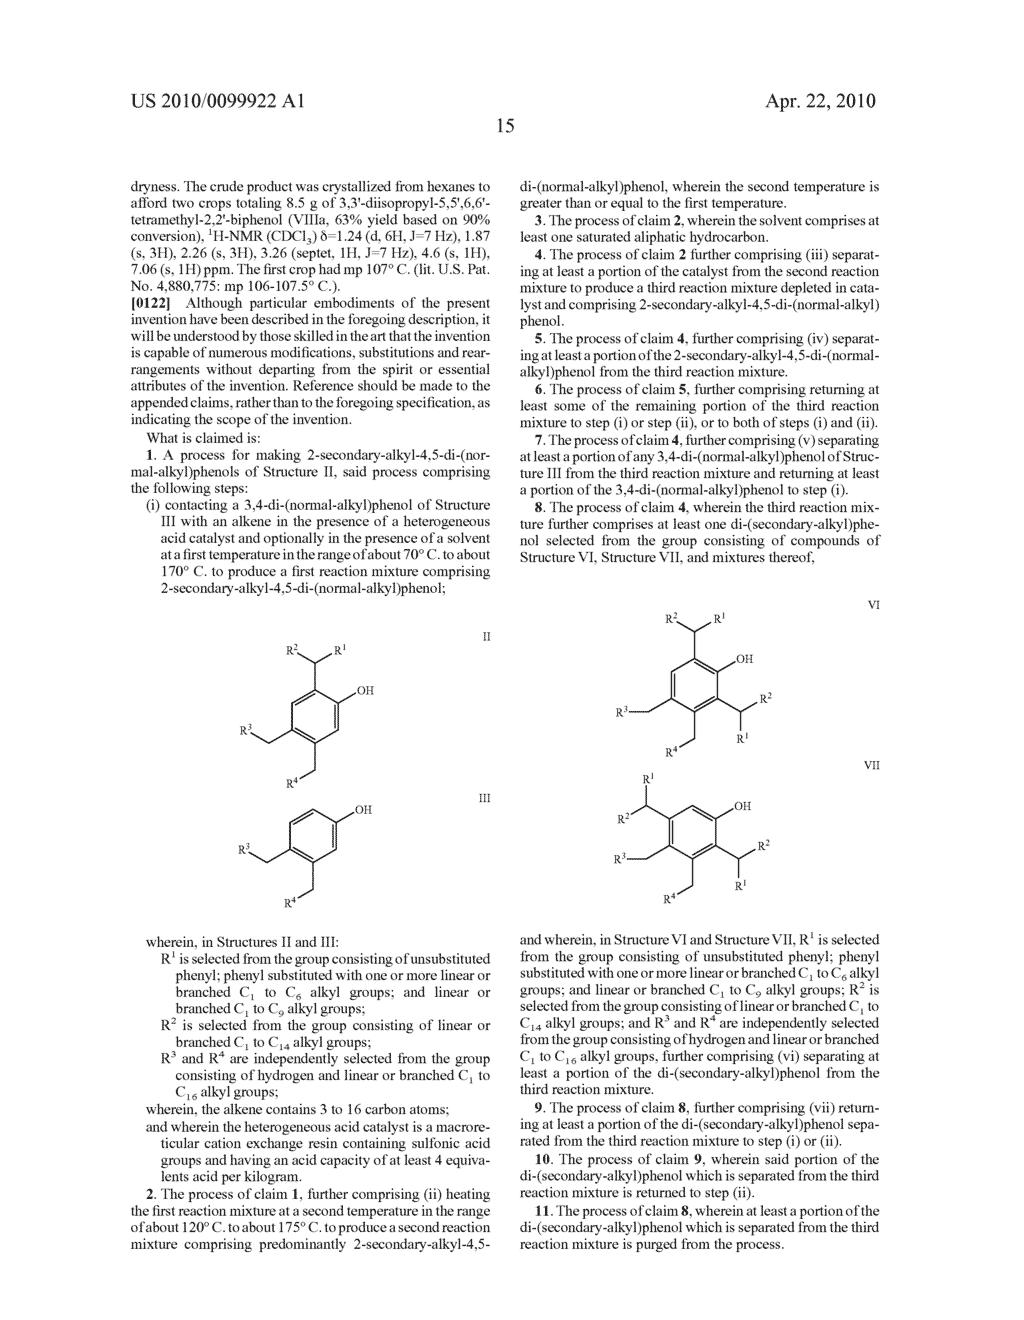 PROCESS FOR MAKING 2-SECONDARY-ALKYL-4,5-DI-(NORMAL-ALKYL)PHENOLS - diagram, schematic, and image 19